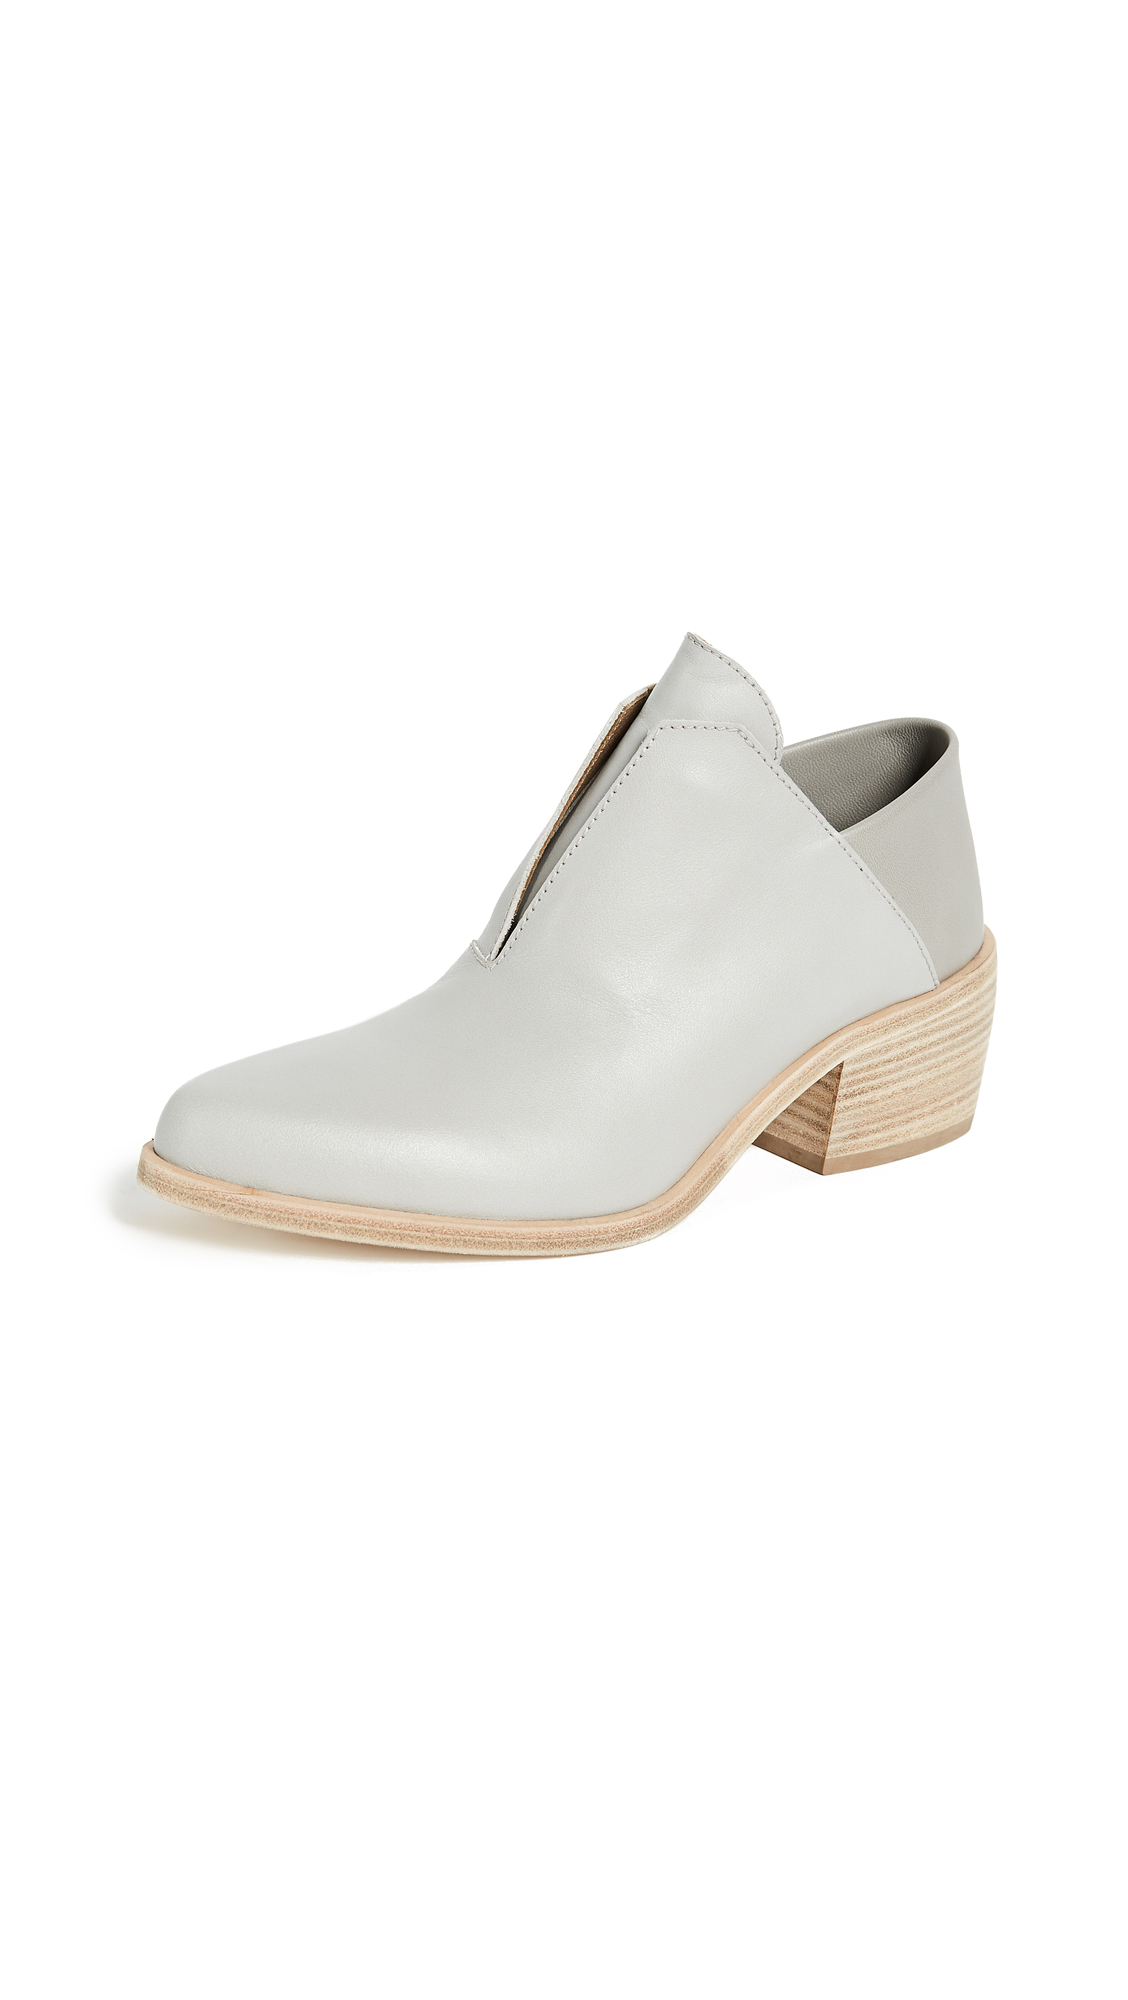 LD Tuttle The River Ankle Boots - Moth